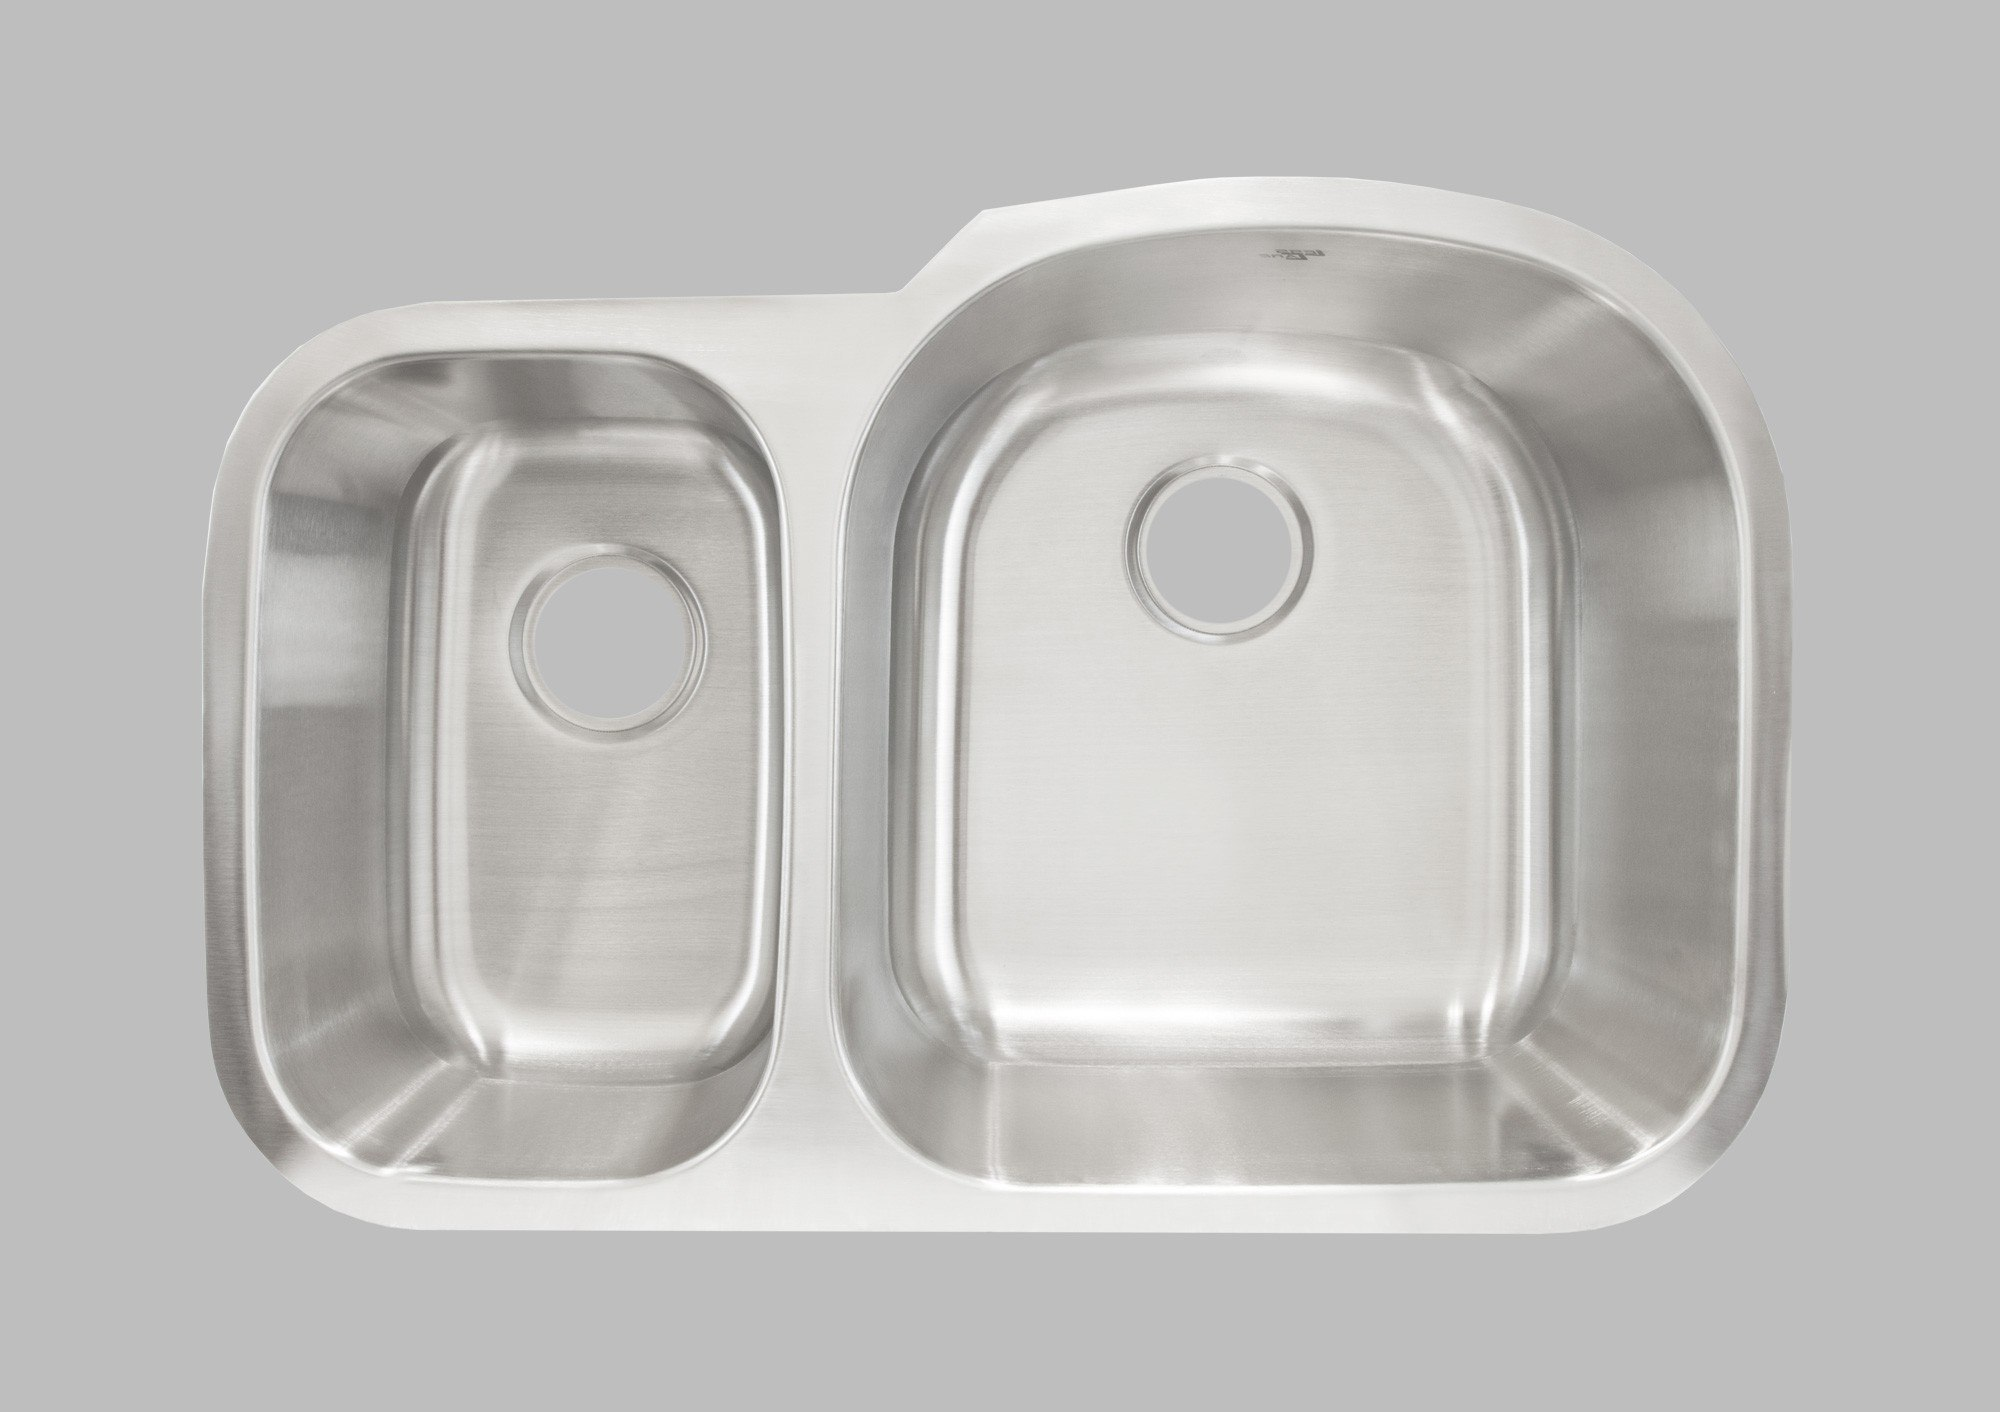 Less Care L201l 31inch Undermount Double Bowl Kitchen Sink Sinks